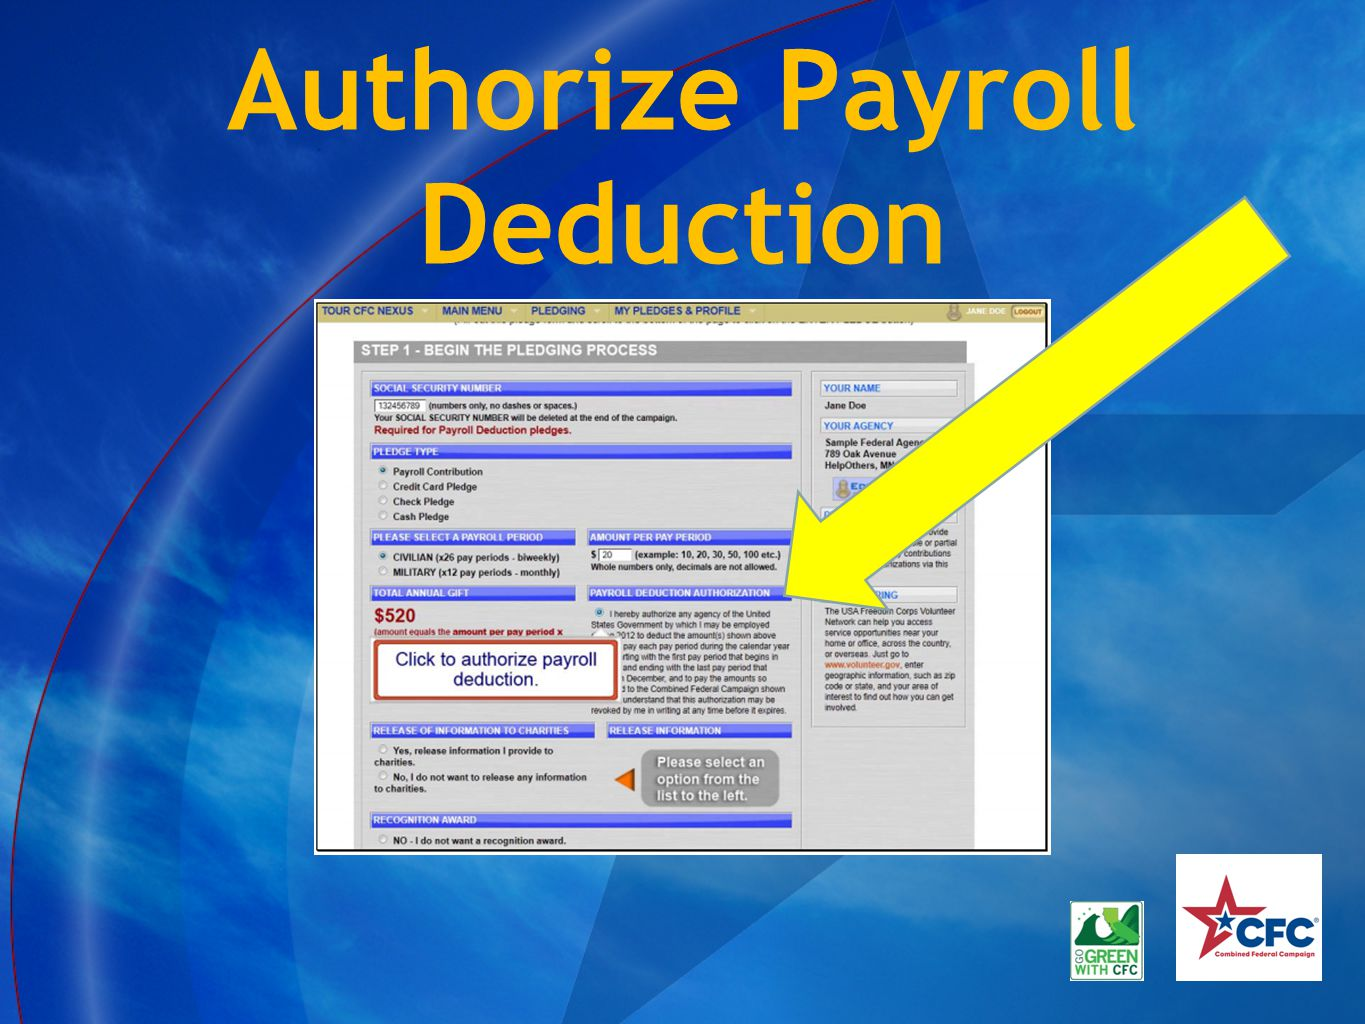 Authorize Payroll Deduction